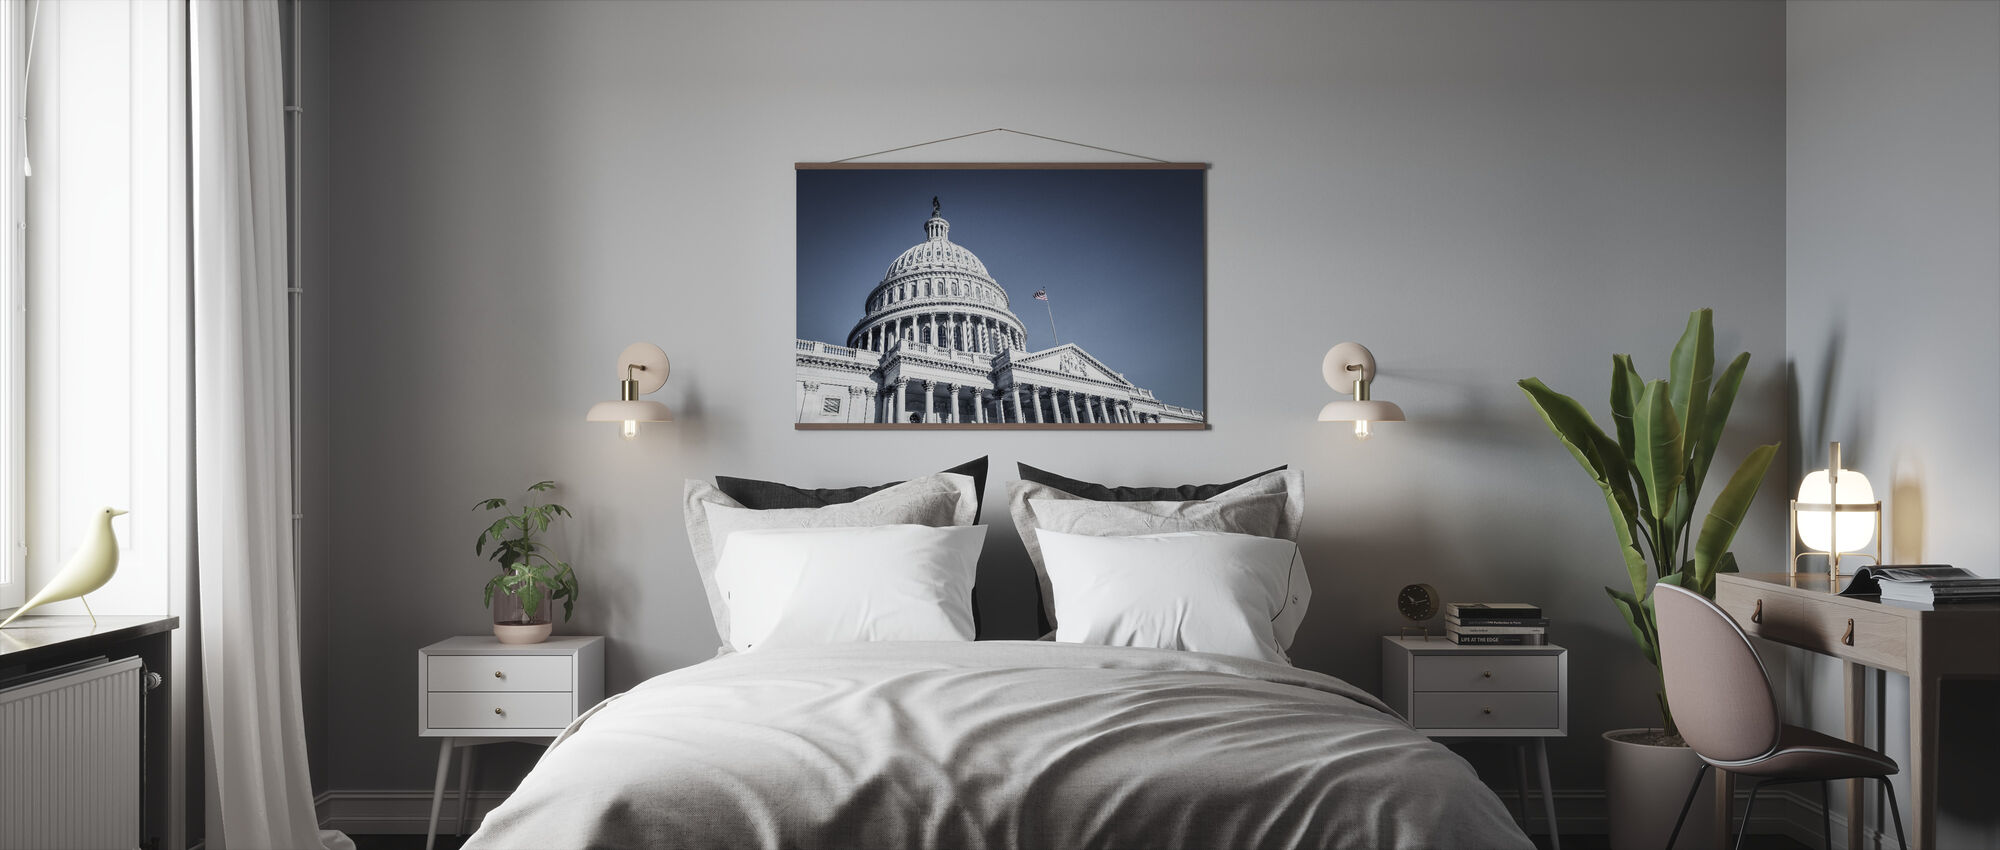 United States Capitol - Poster - Bedroom